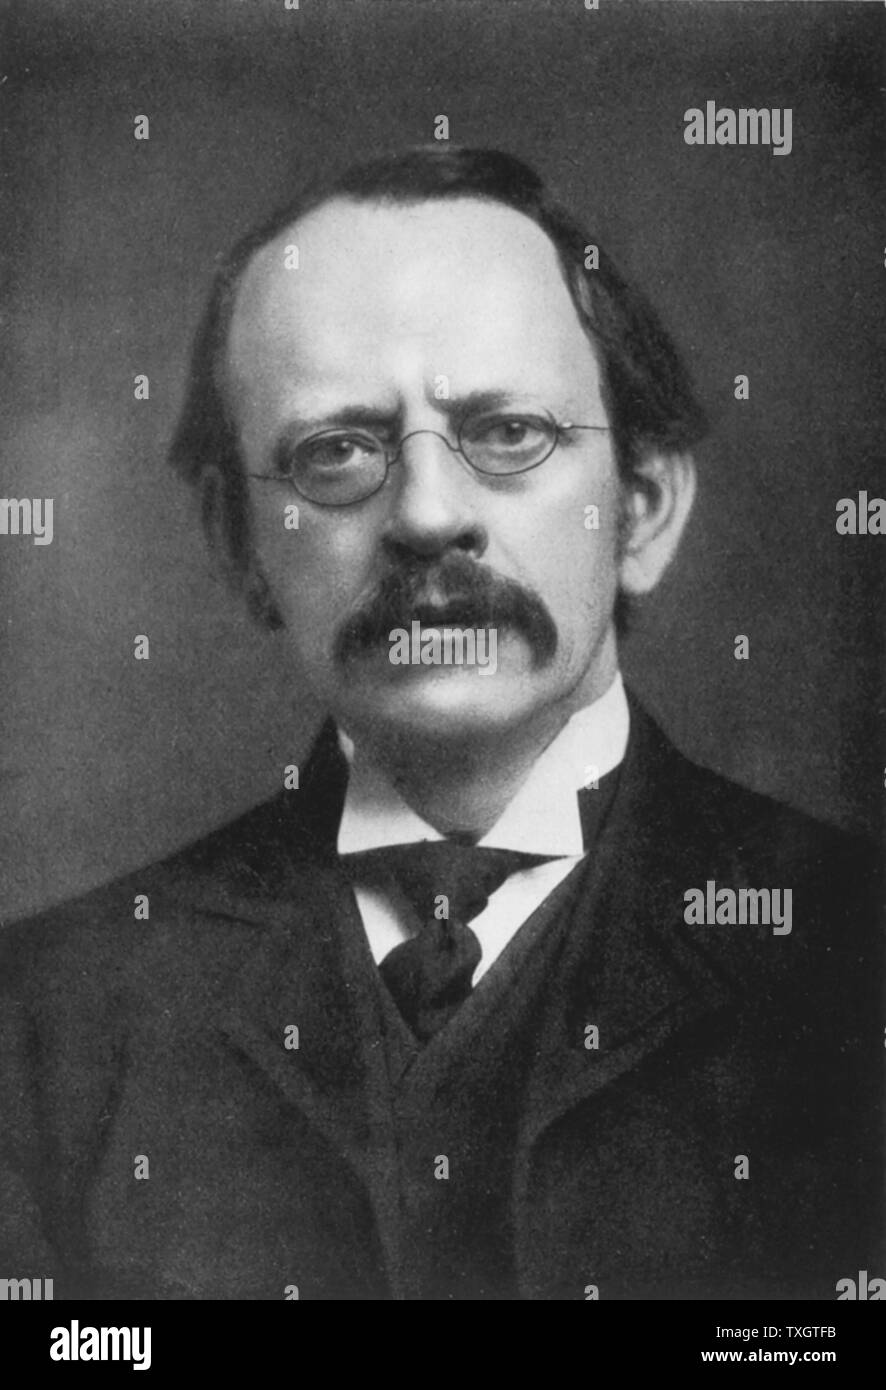 Joseph John Thomson (1856-1940) British physicist, discoverer of Electron and pioneer of nuclear physics.  From photograph taken pre-1916 Stock Photo